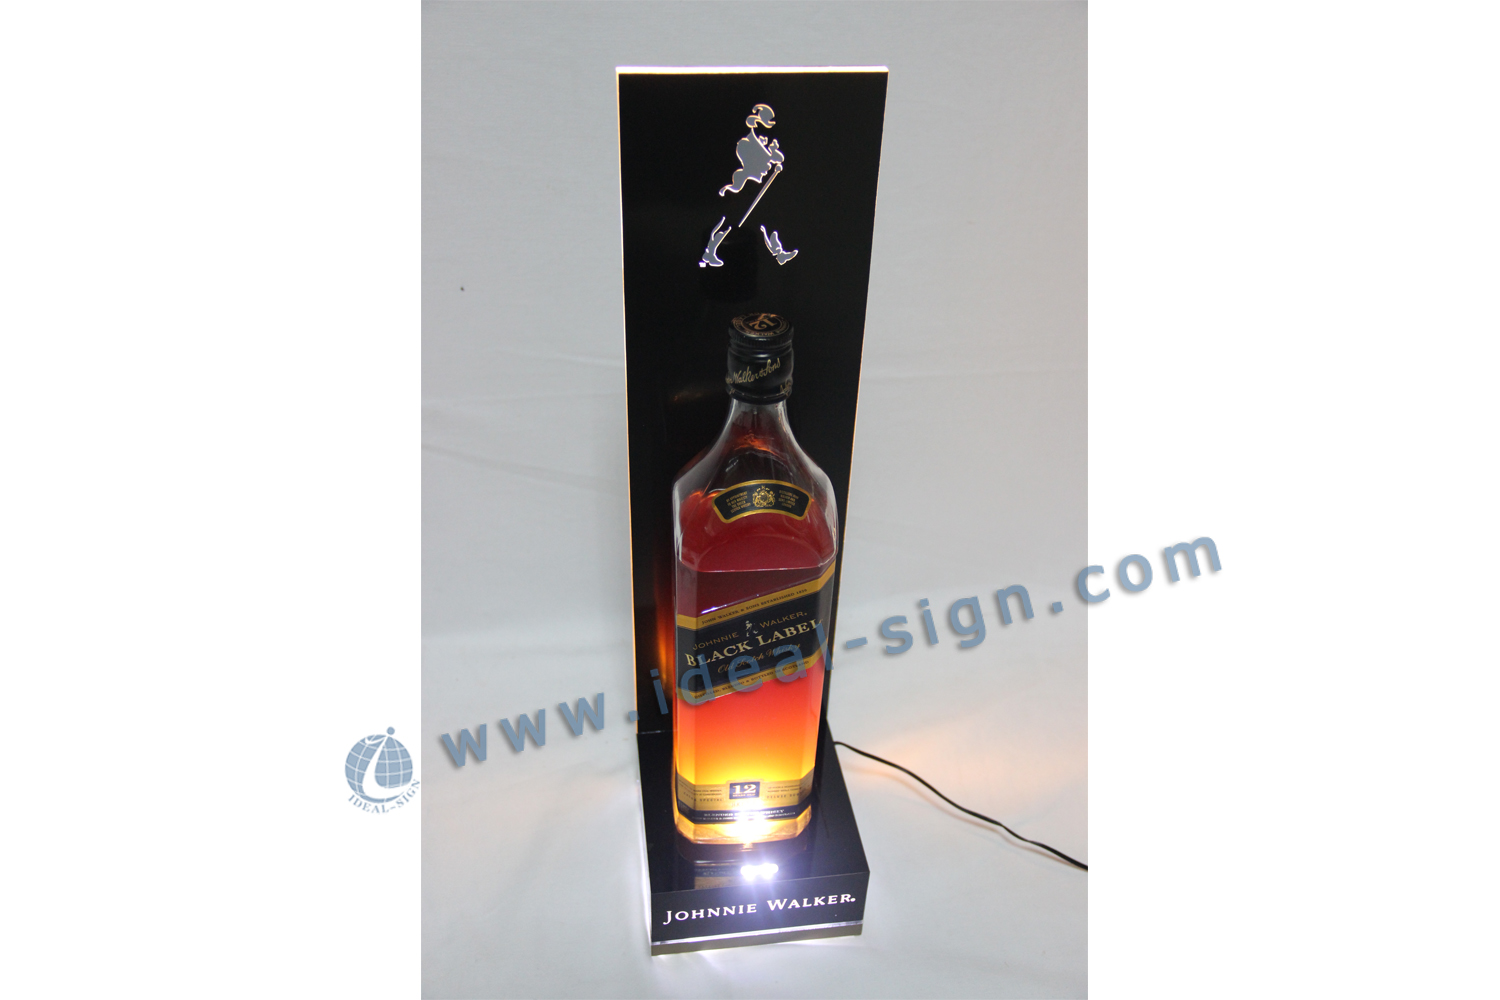 JOHNNIE WALKER LED acrylic bottle display